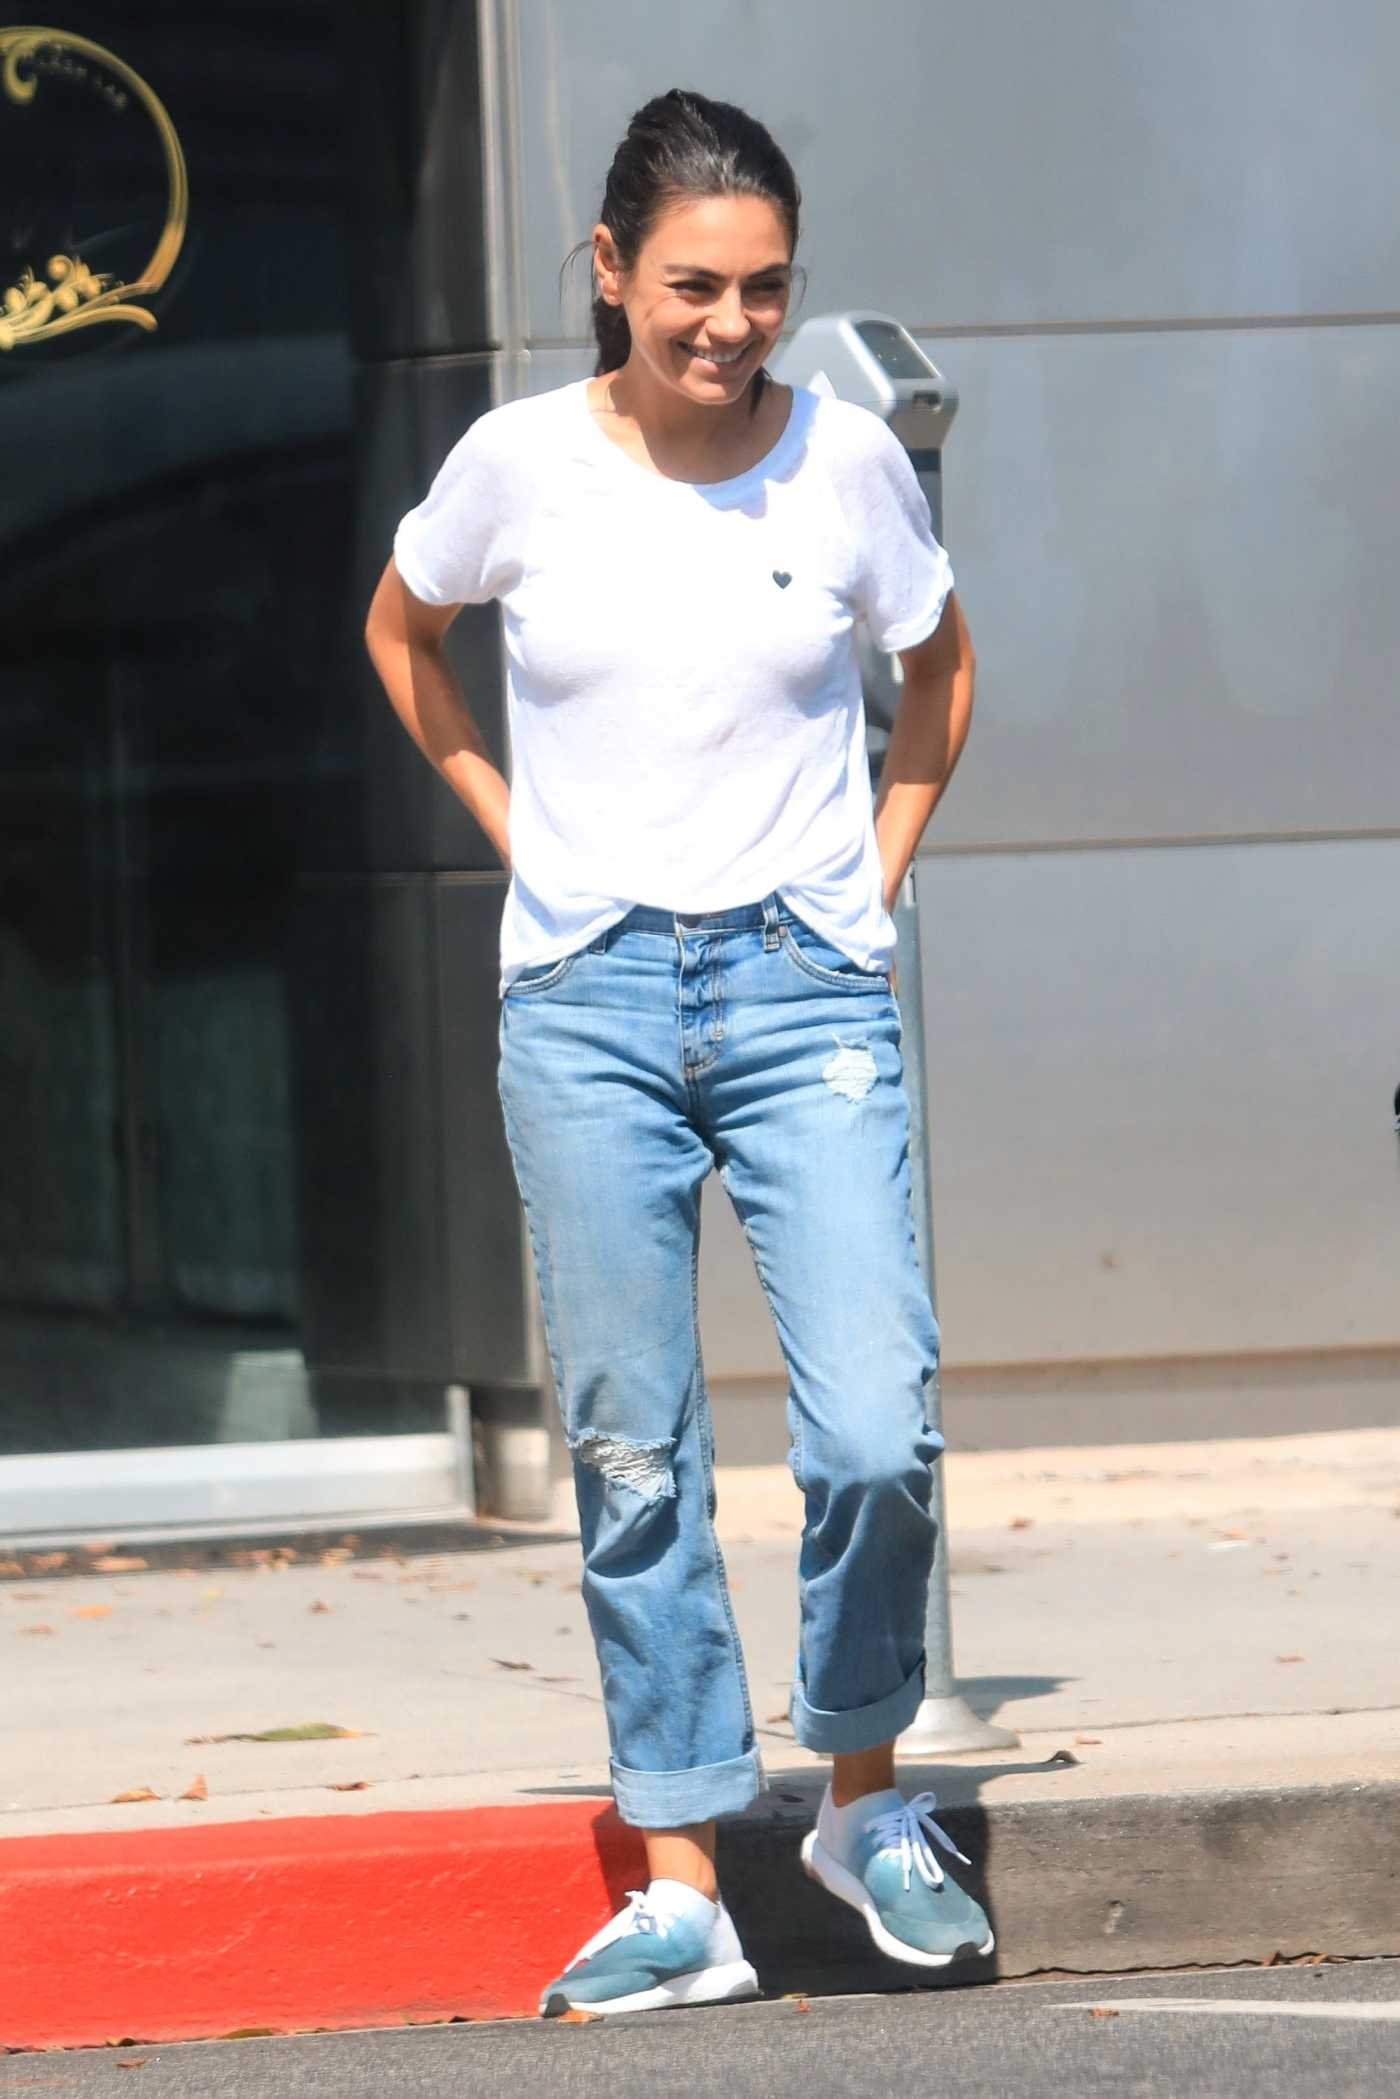 Mila Kunis in a White Tee Was Seen Out in Los Angeles 08/12/2019